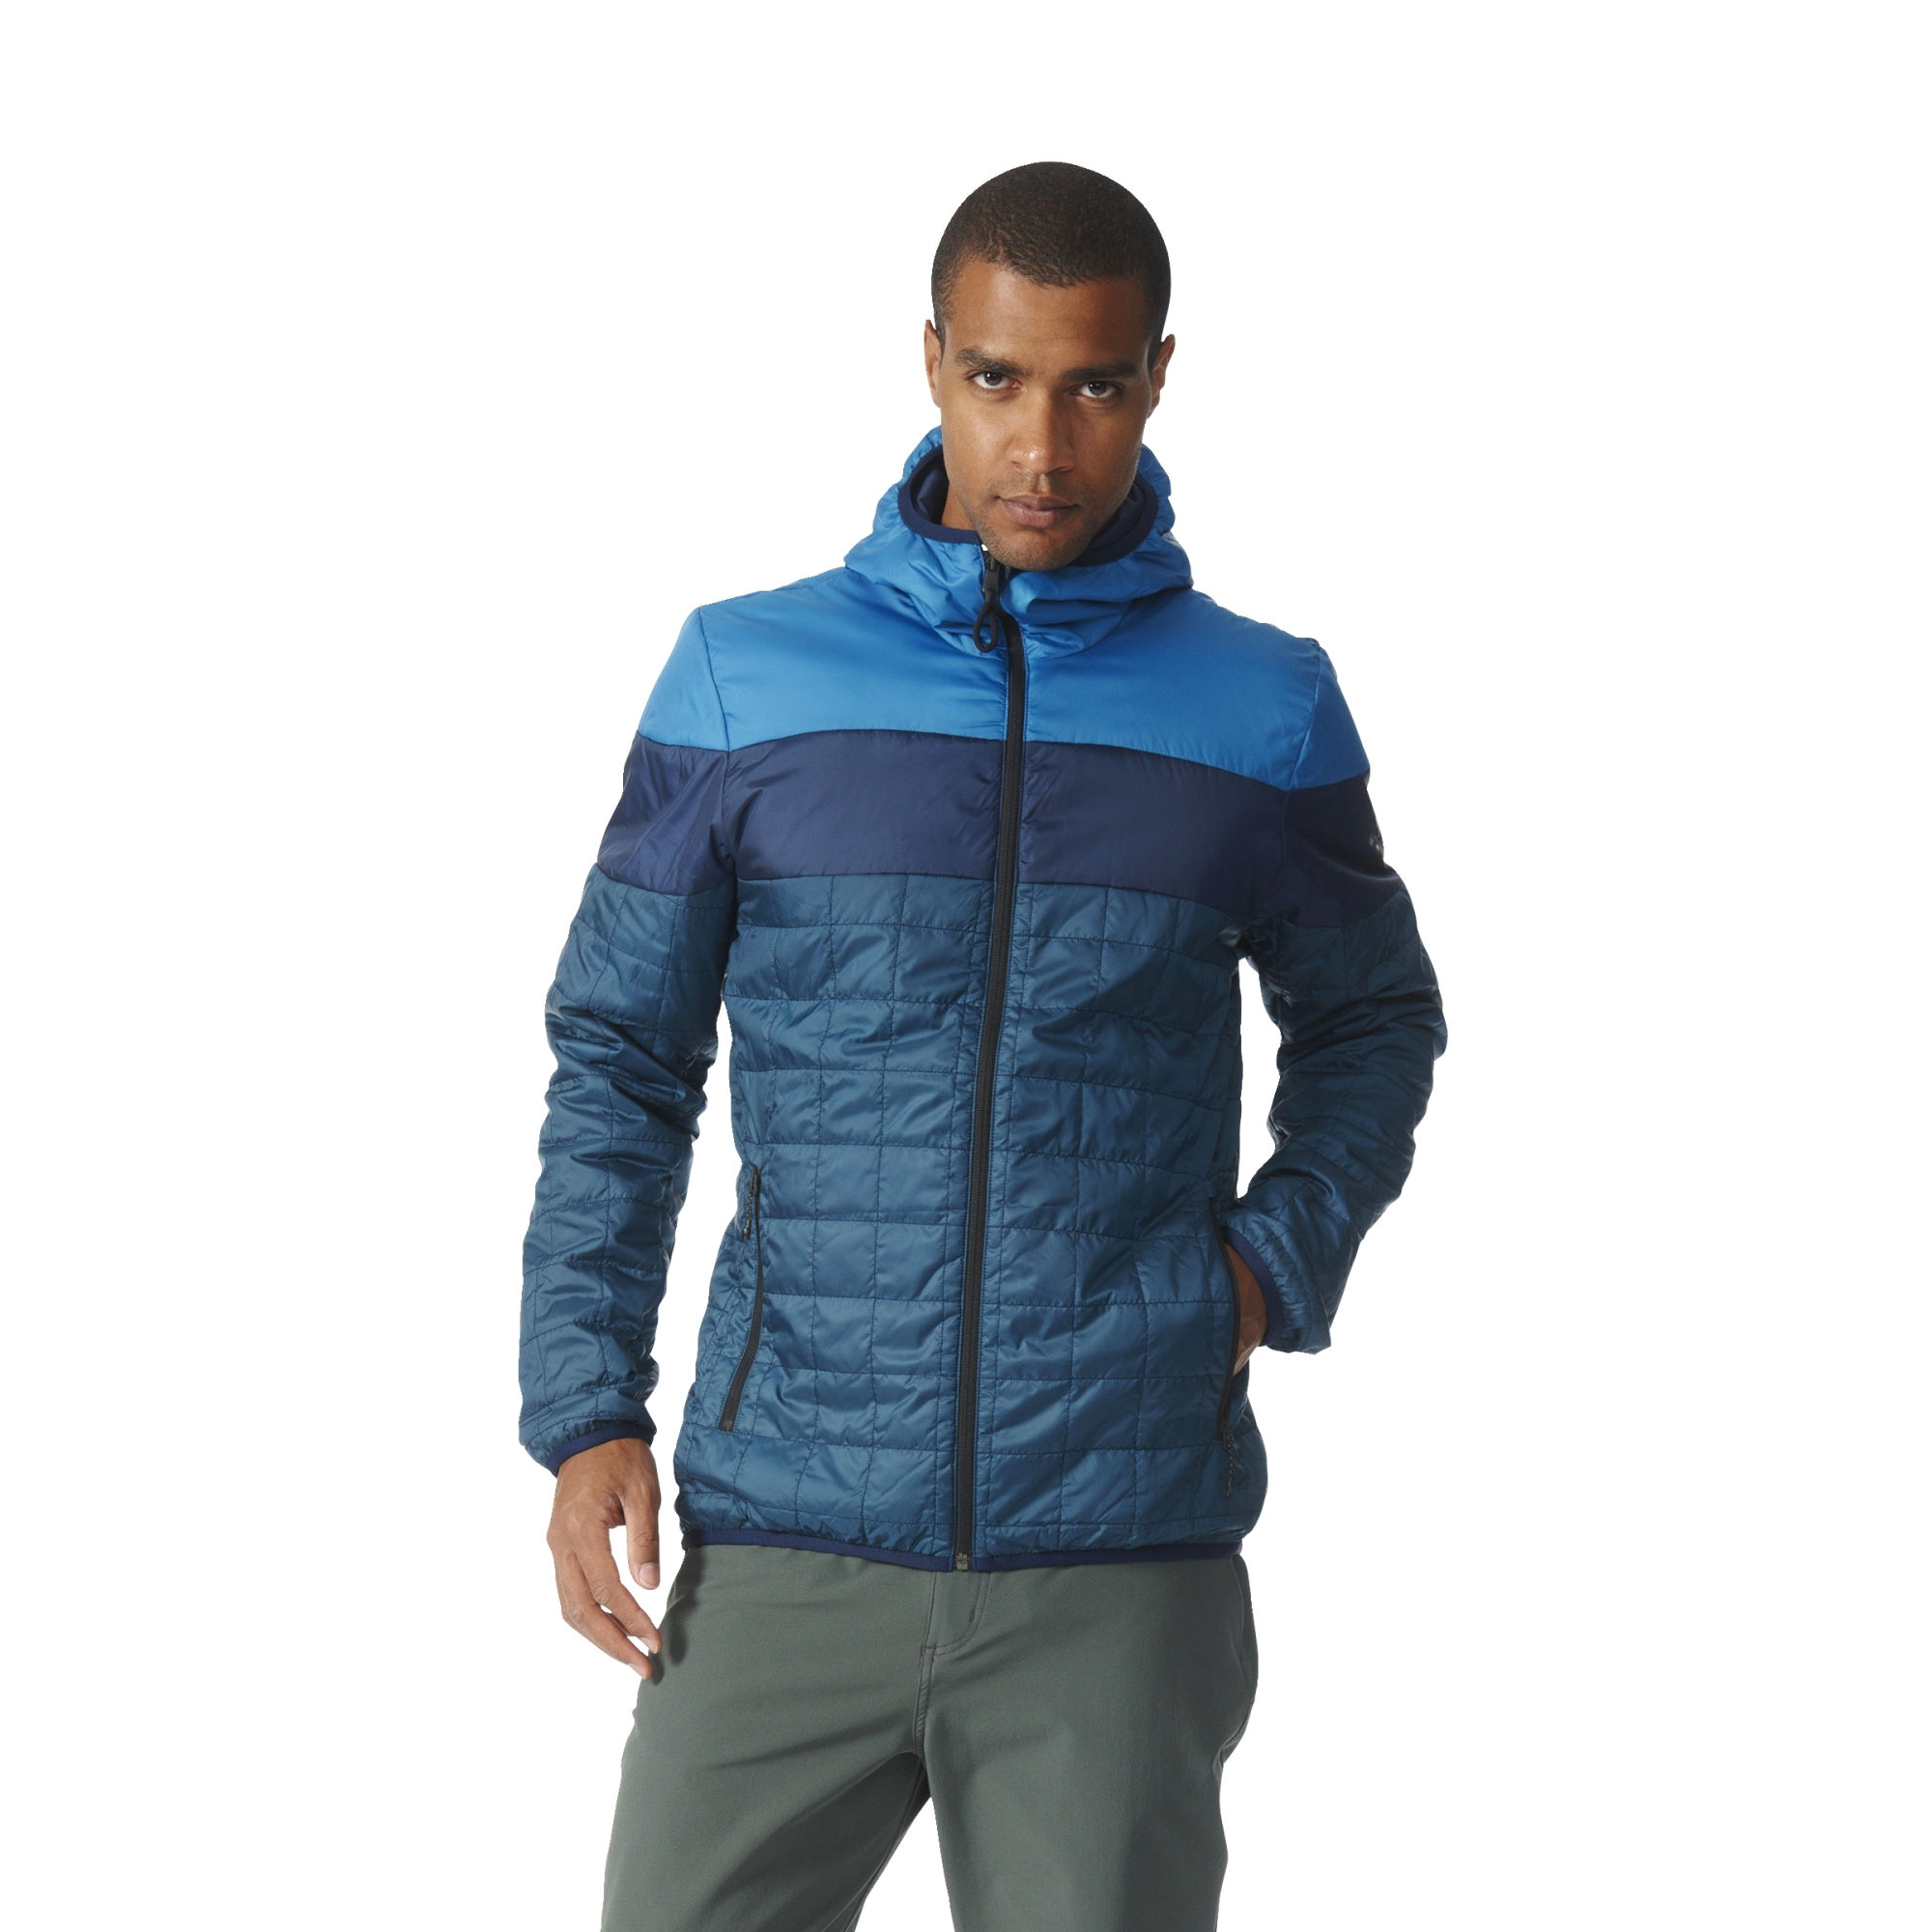 Shop for primaloft jacket online at Target. Free shipping on purchases over $35 and 5% Off W/ REDcard · Same Day Store Pick-Up · Free Shipping $35+ · Free ReturnsStyles: Jackets, Active wear, Maternity, Dresses, Jeans, Pants, Shirts, Shorts, Skirts.